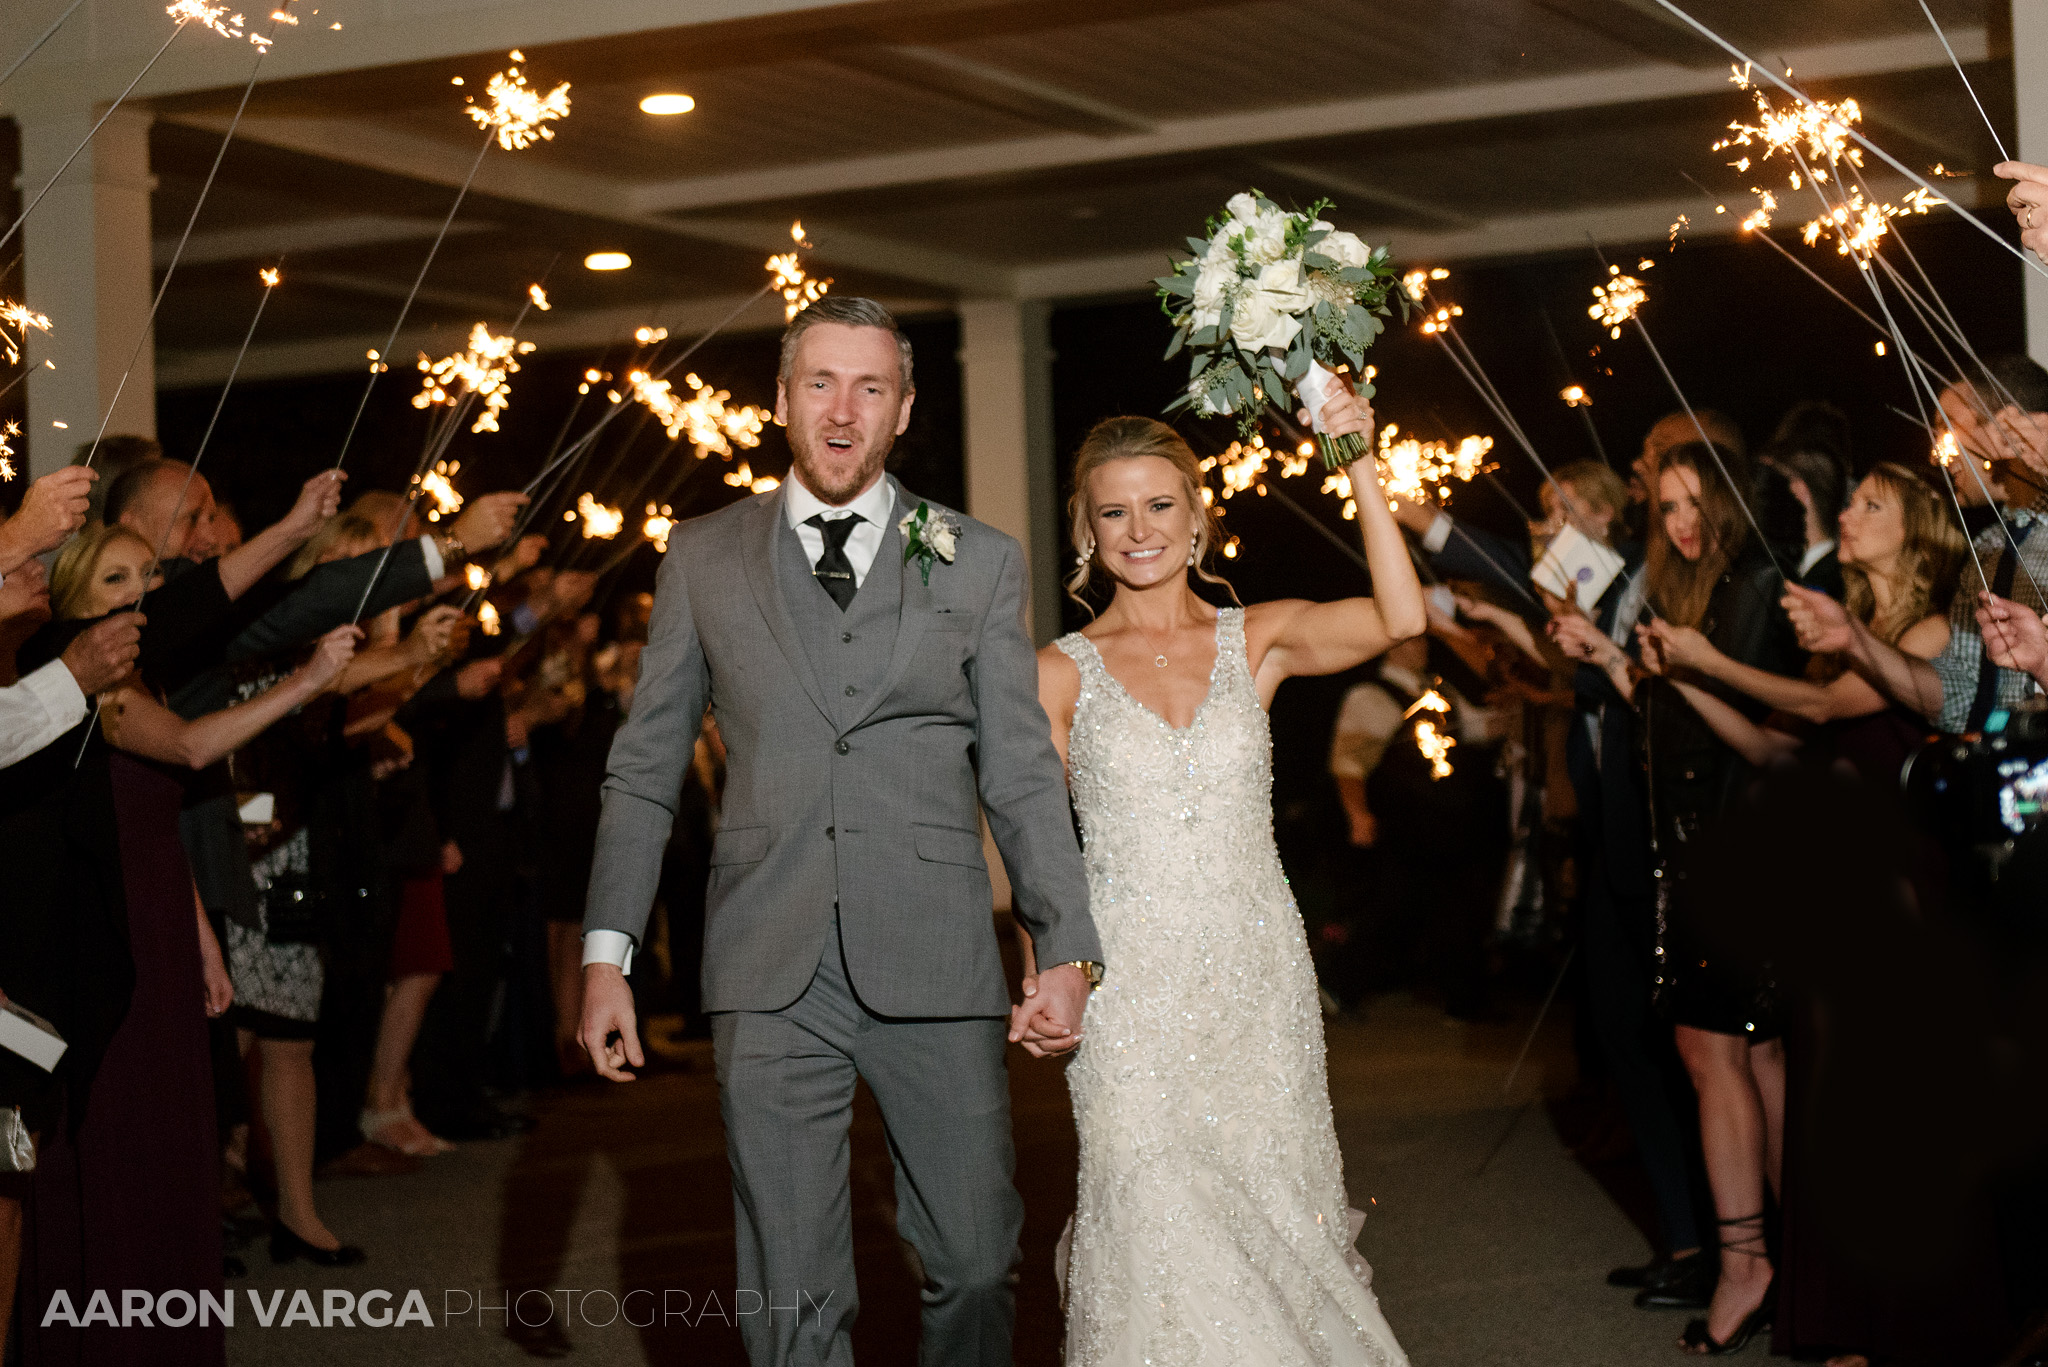 60 montour heights country club wedding sparkler exit - Amy + Bill | Montour Heights Country Club Wedding Photos